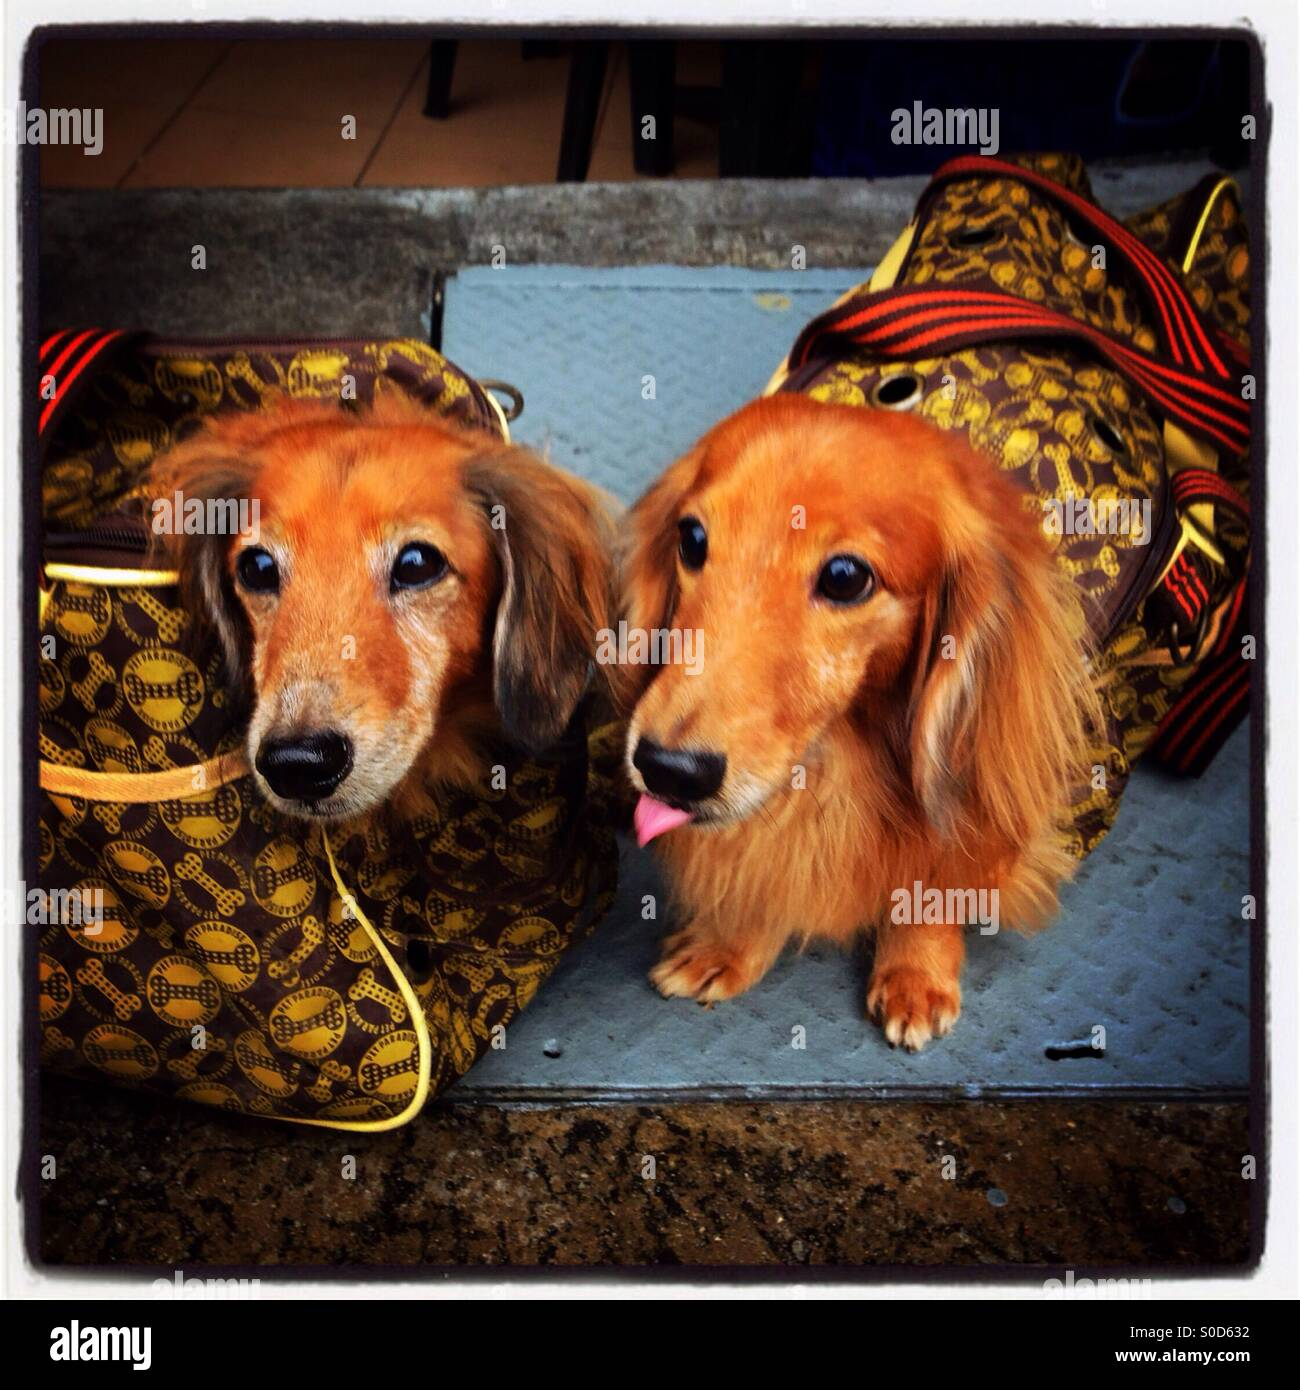 Two pet dogs being carried in luxury handbags in Singapore - Stock Image